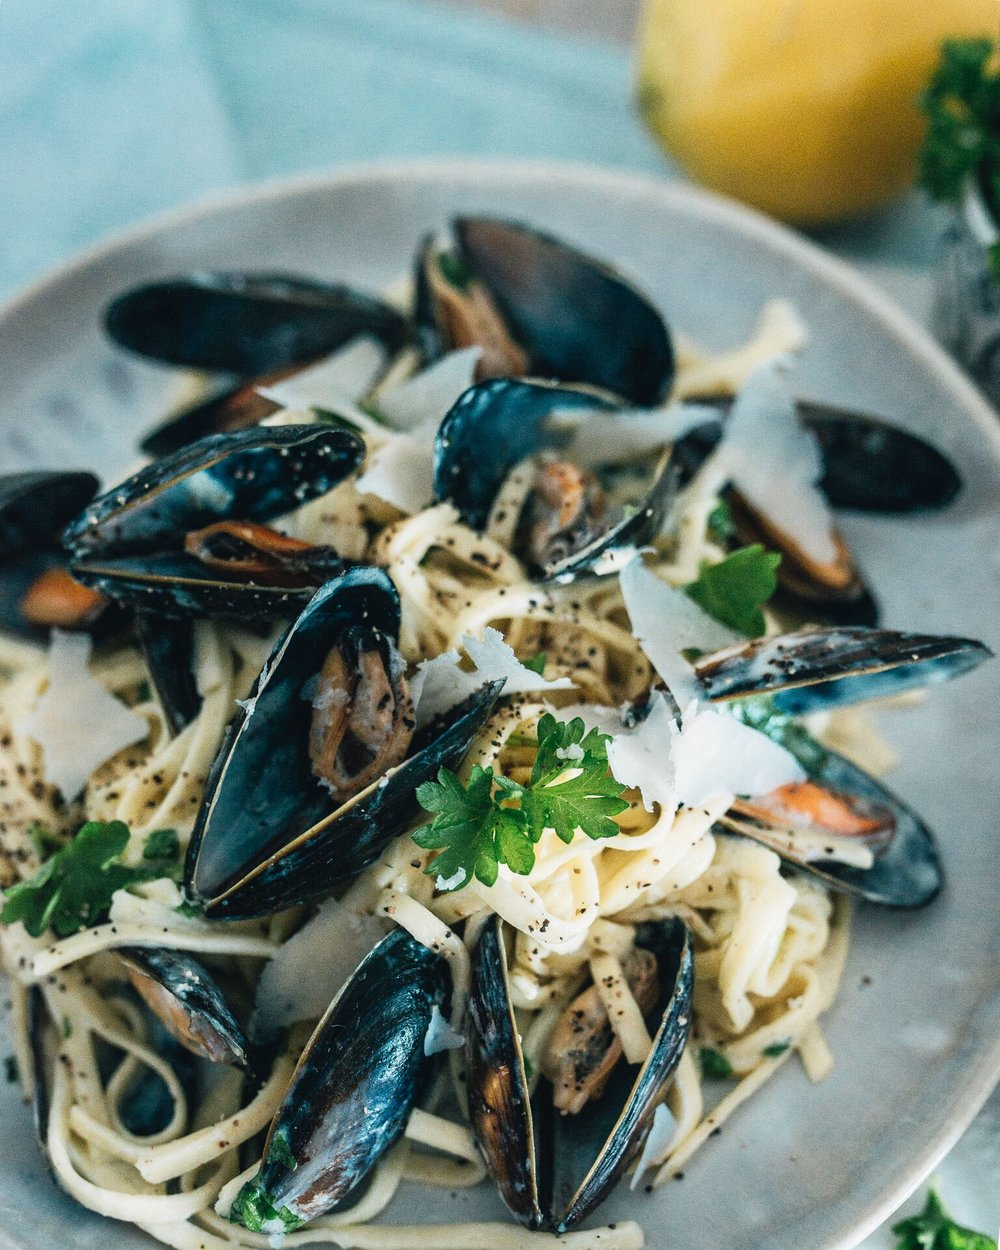 Smeg's Montecoppe Parmigiano Reggiano cheese Mussel Linguine The Creative Larder Food Blog